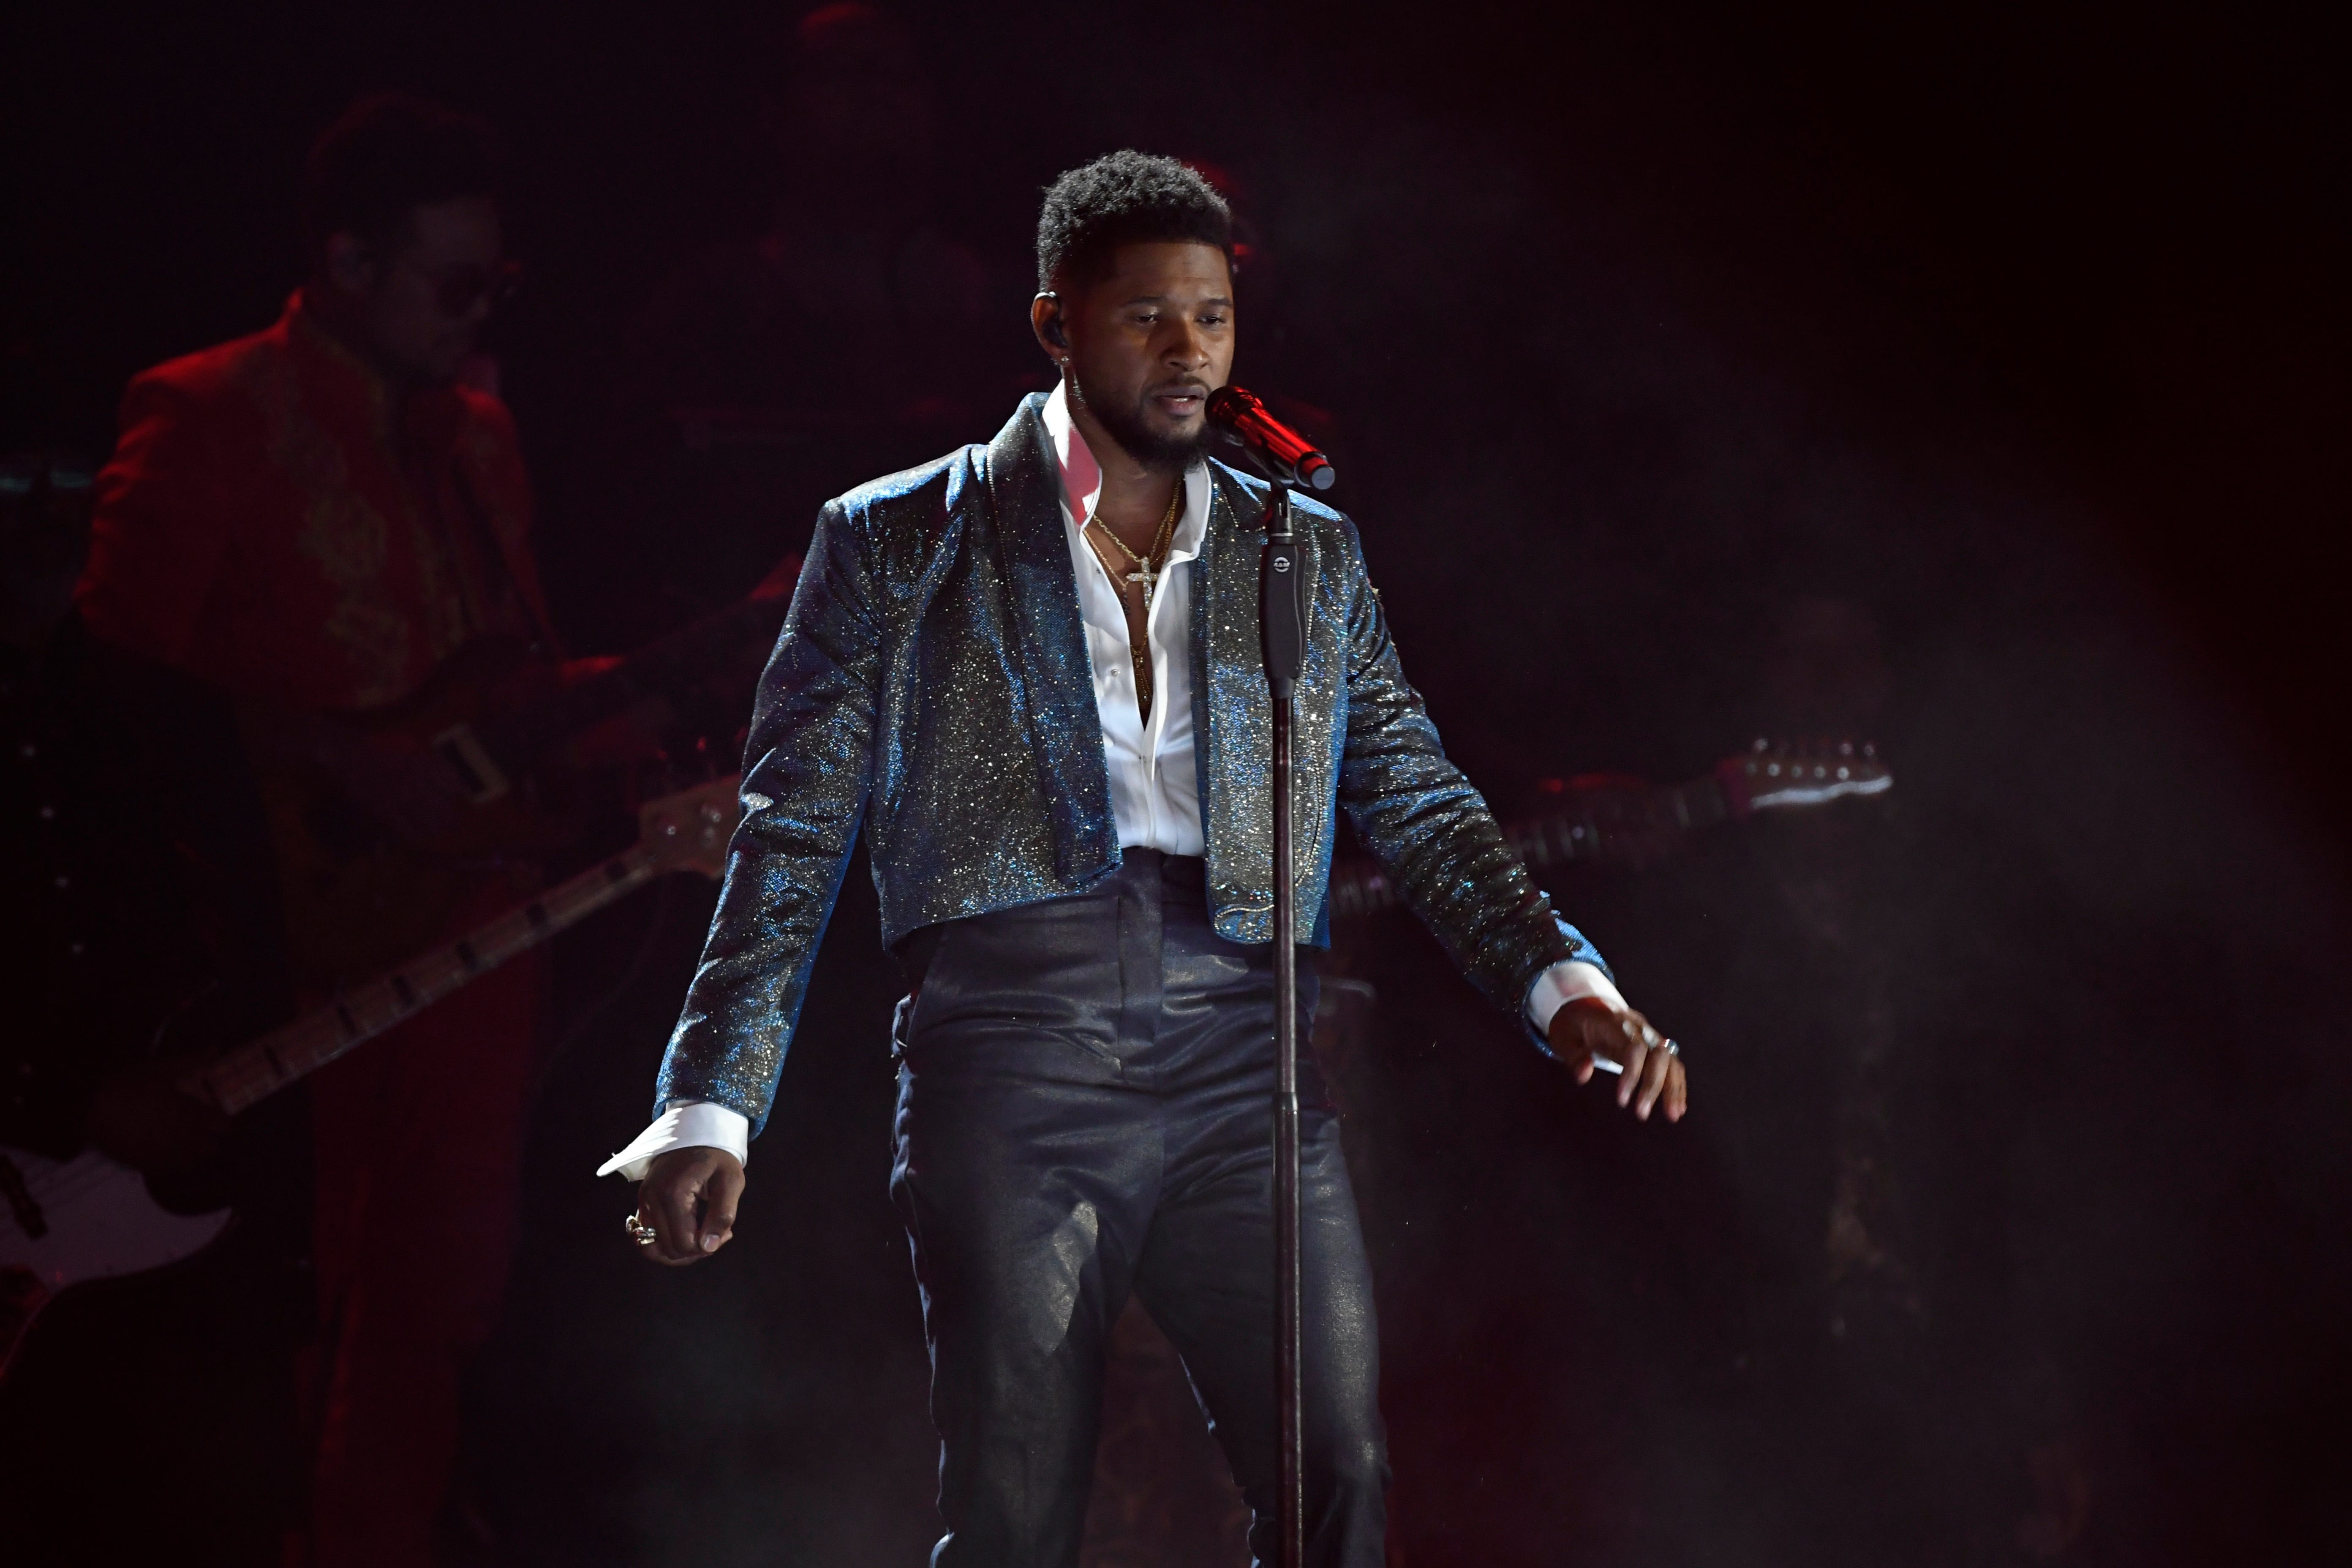 Grammys 2020: Some fans upset about Usher's Prince tribute